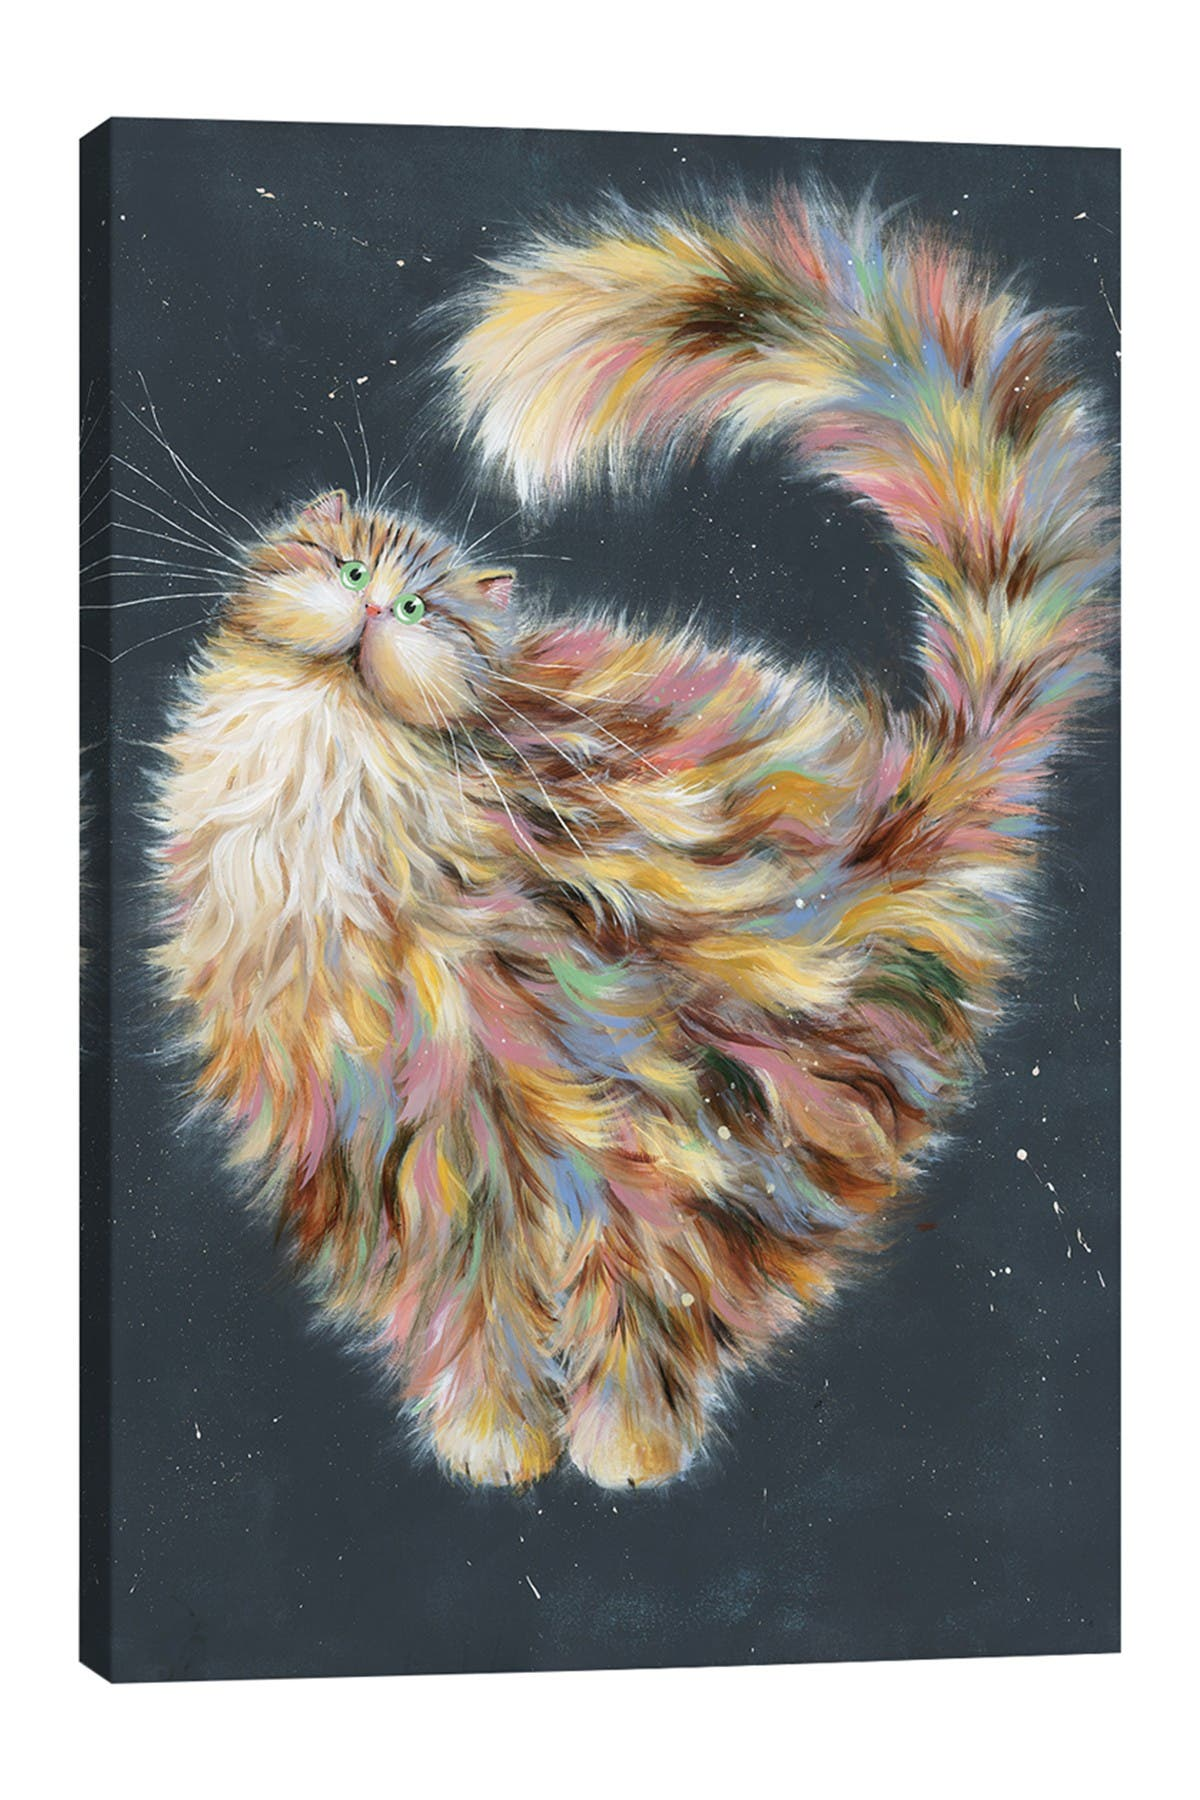 Image of iCanvas Patapoufette by Kim Haskins Wall Art